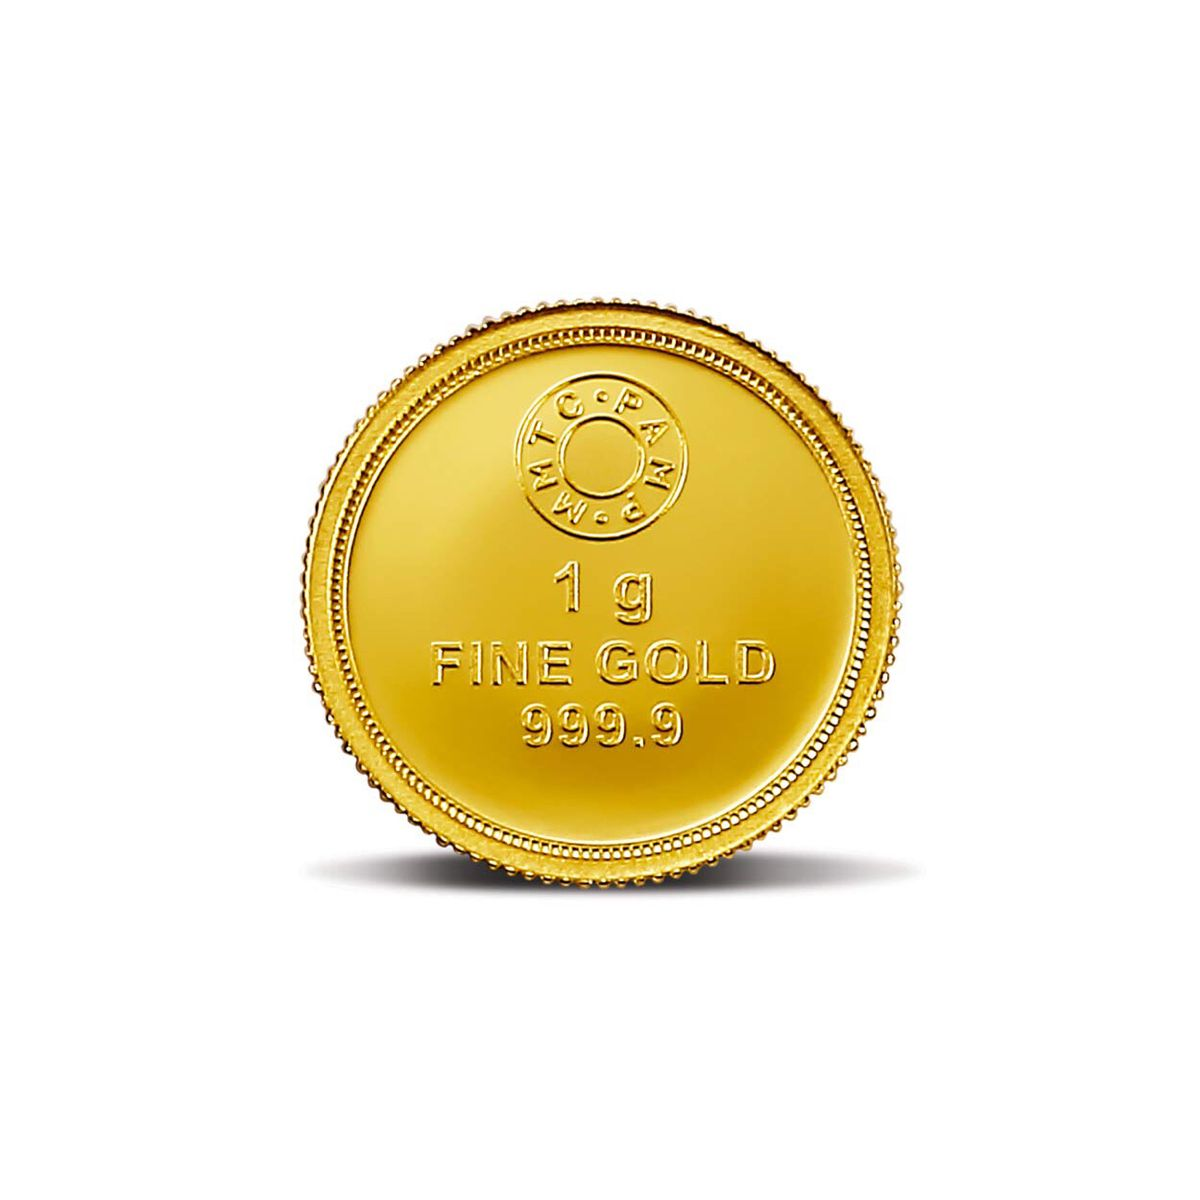 Mmtc Pamp Lotus 24k 999 9 1 Gm Gold Coin In 2020 Gold Coins Gold Purchase Gold Models